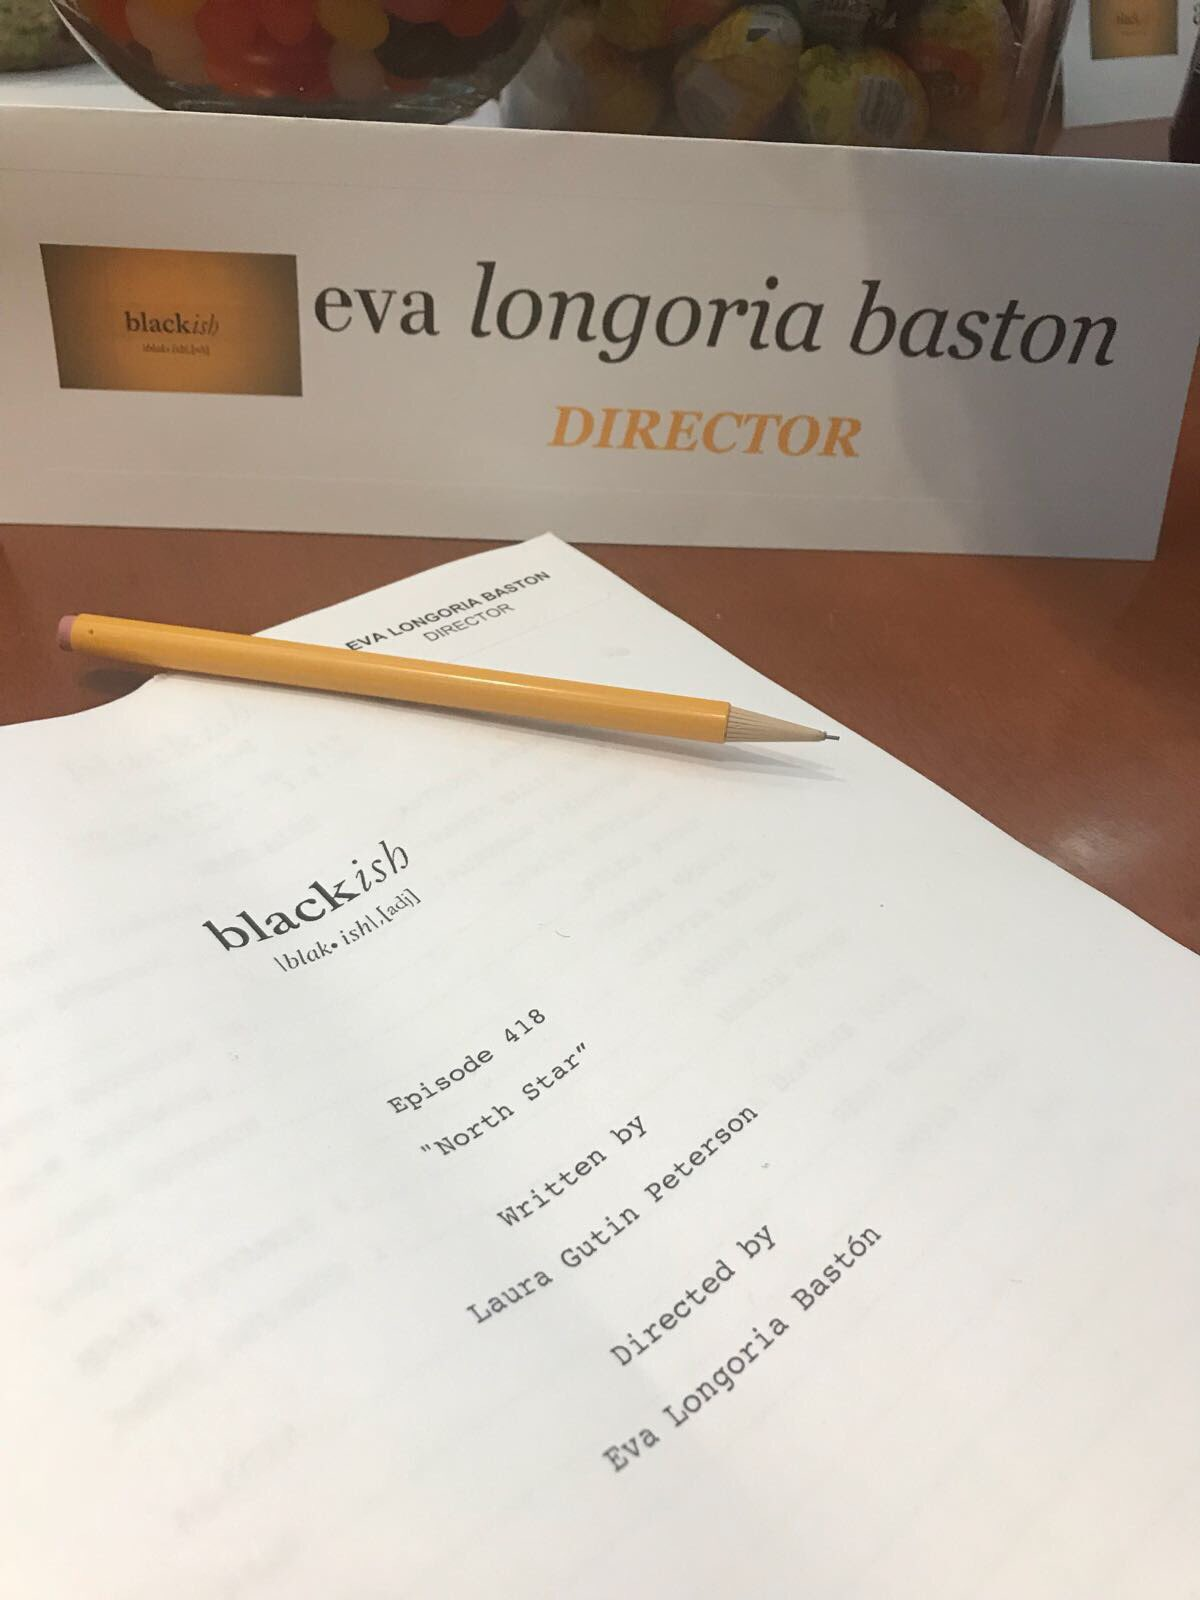 And it begins again....#DirectingMode #BossLady #Blackish 🎬🎬🎬 https://t.co/5IY8acBrvi